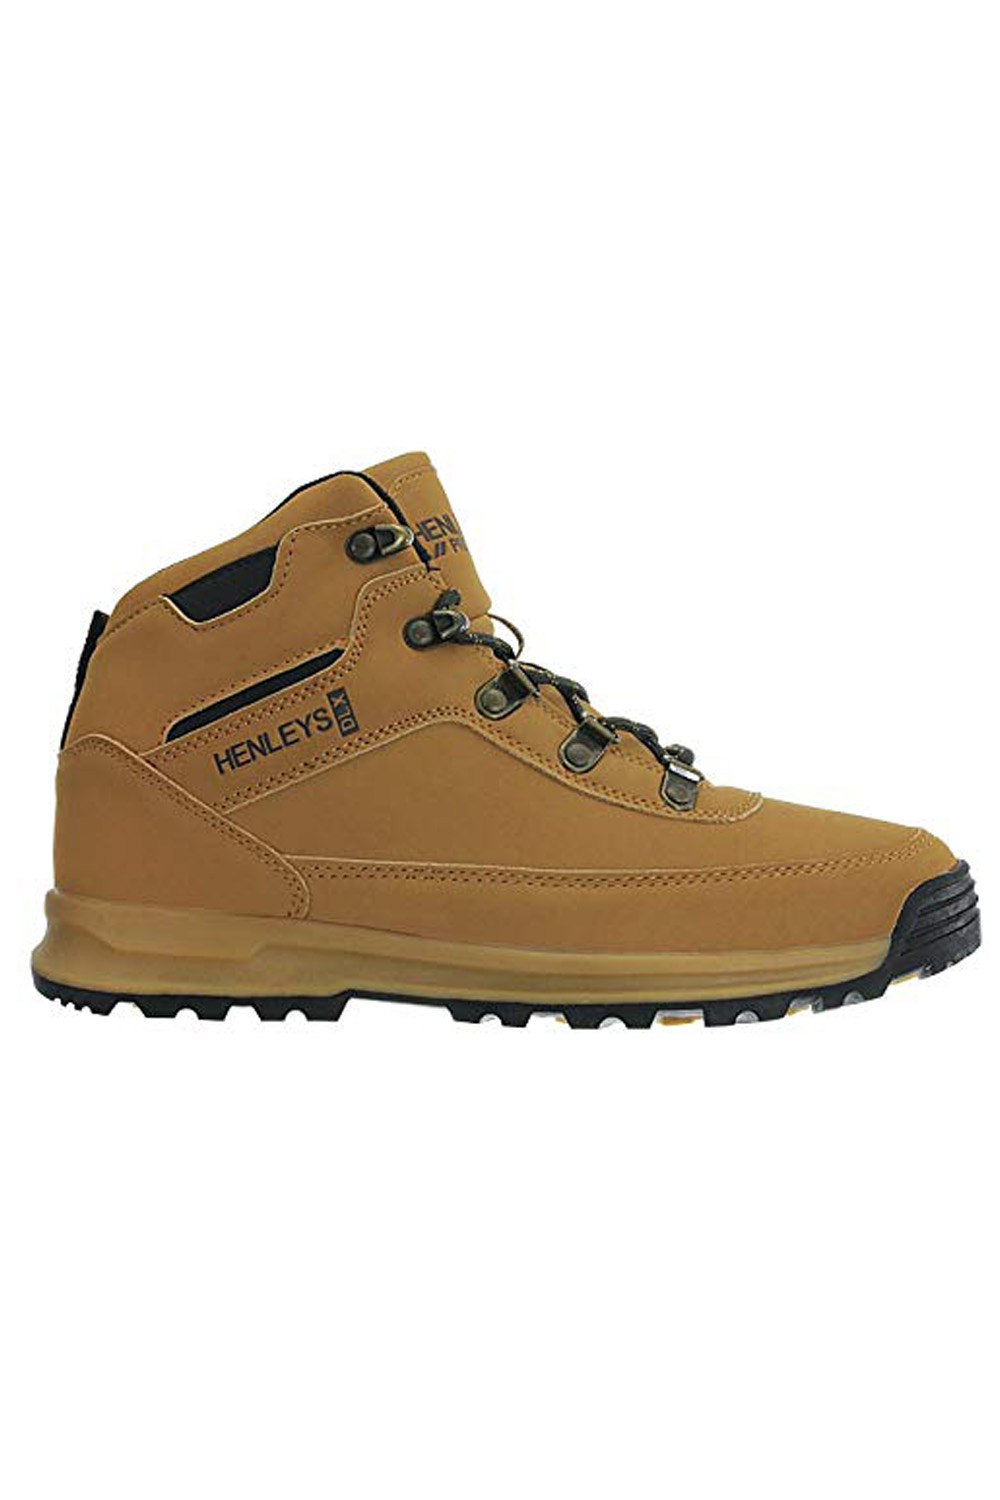 Henleys-Mens-Travis-Hiking-Boots-Walking-Lace-Up-Outdoor-Shoes-Sizes-UK-6-12 thumbnail 5